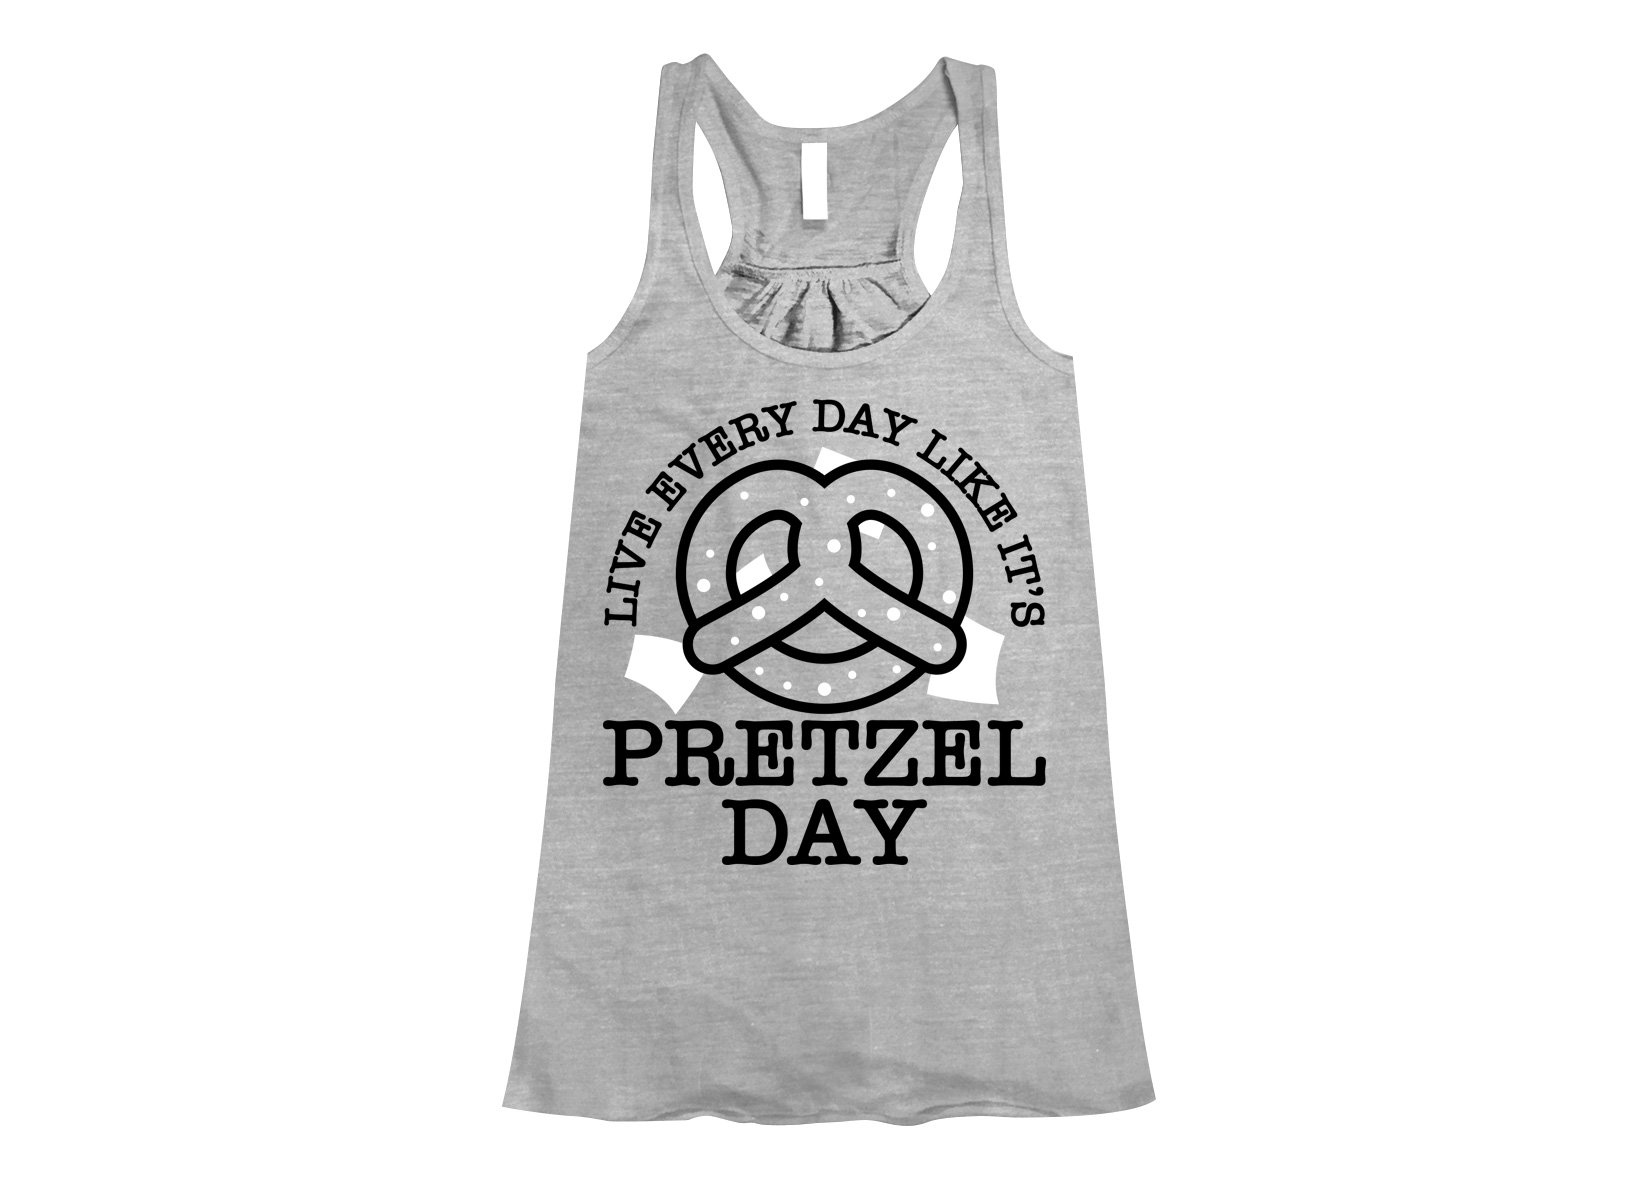 Live Every Day Like It's Pretzel Day on Womens Tanks T-Shirt